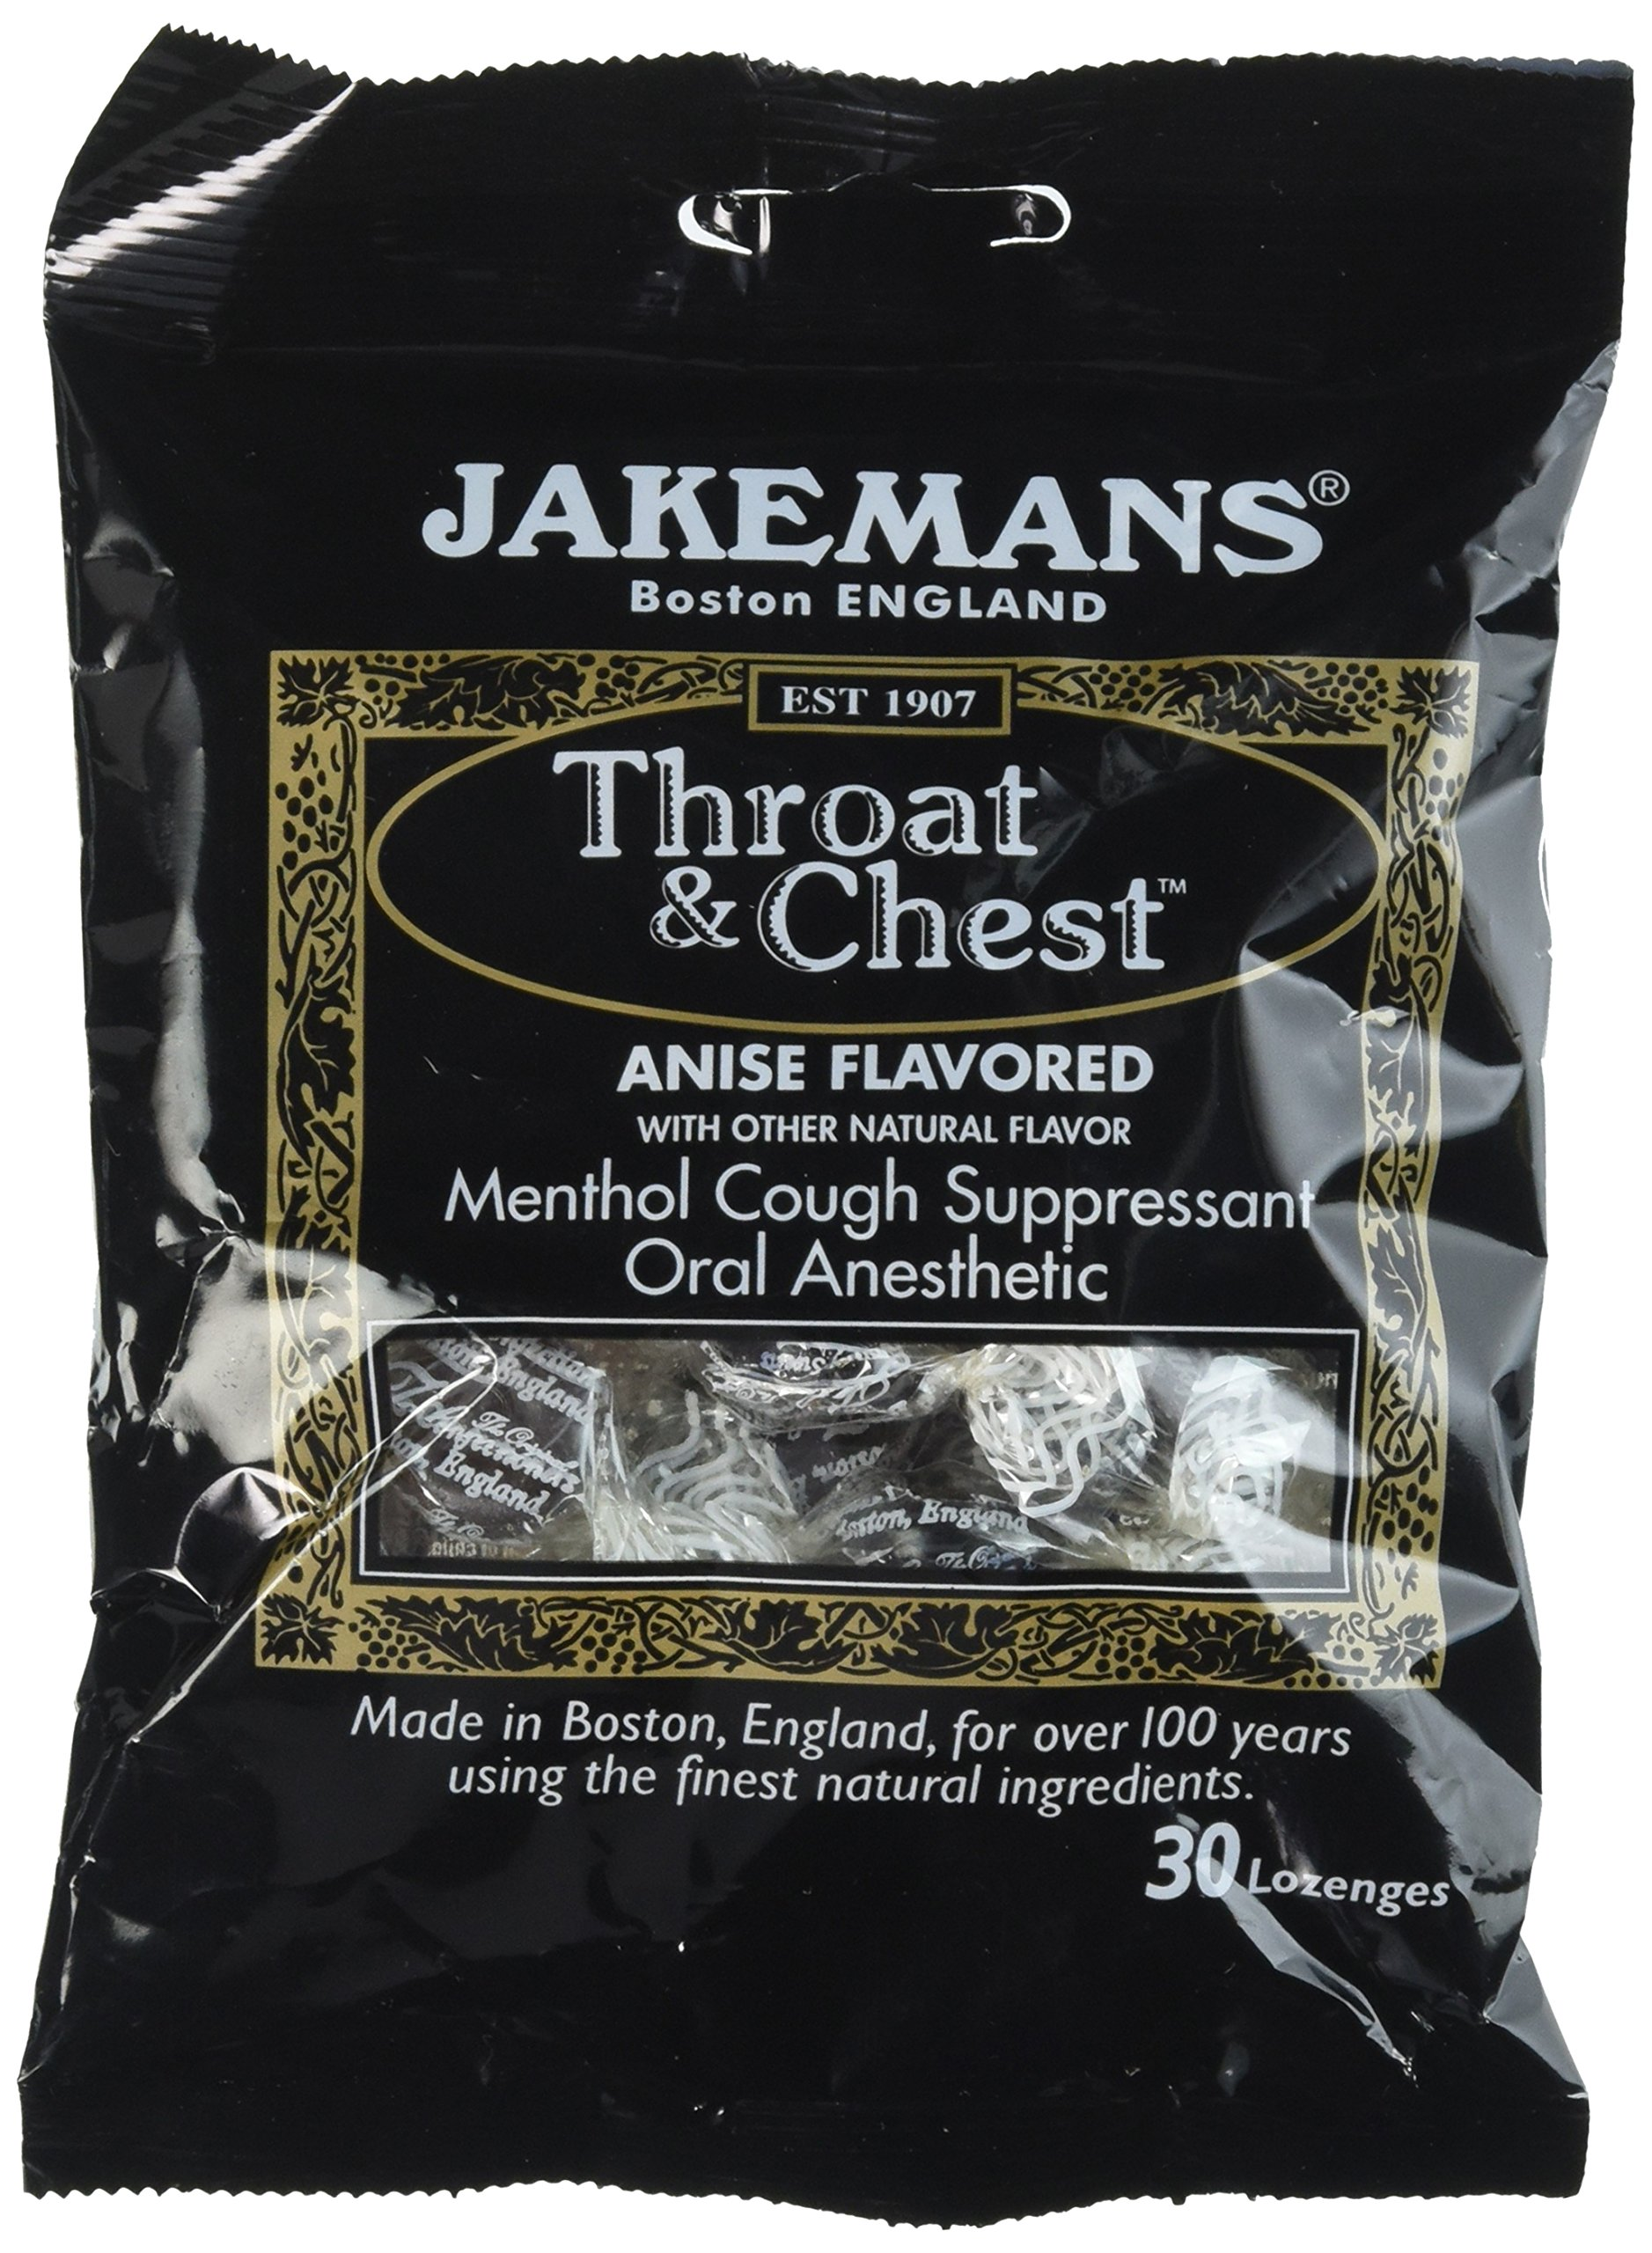 Jakeman's Throat and Chest Anise Flavored Lozenges (30), 4 Count